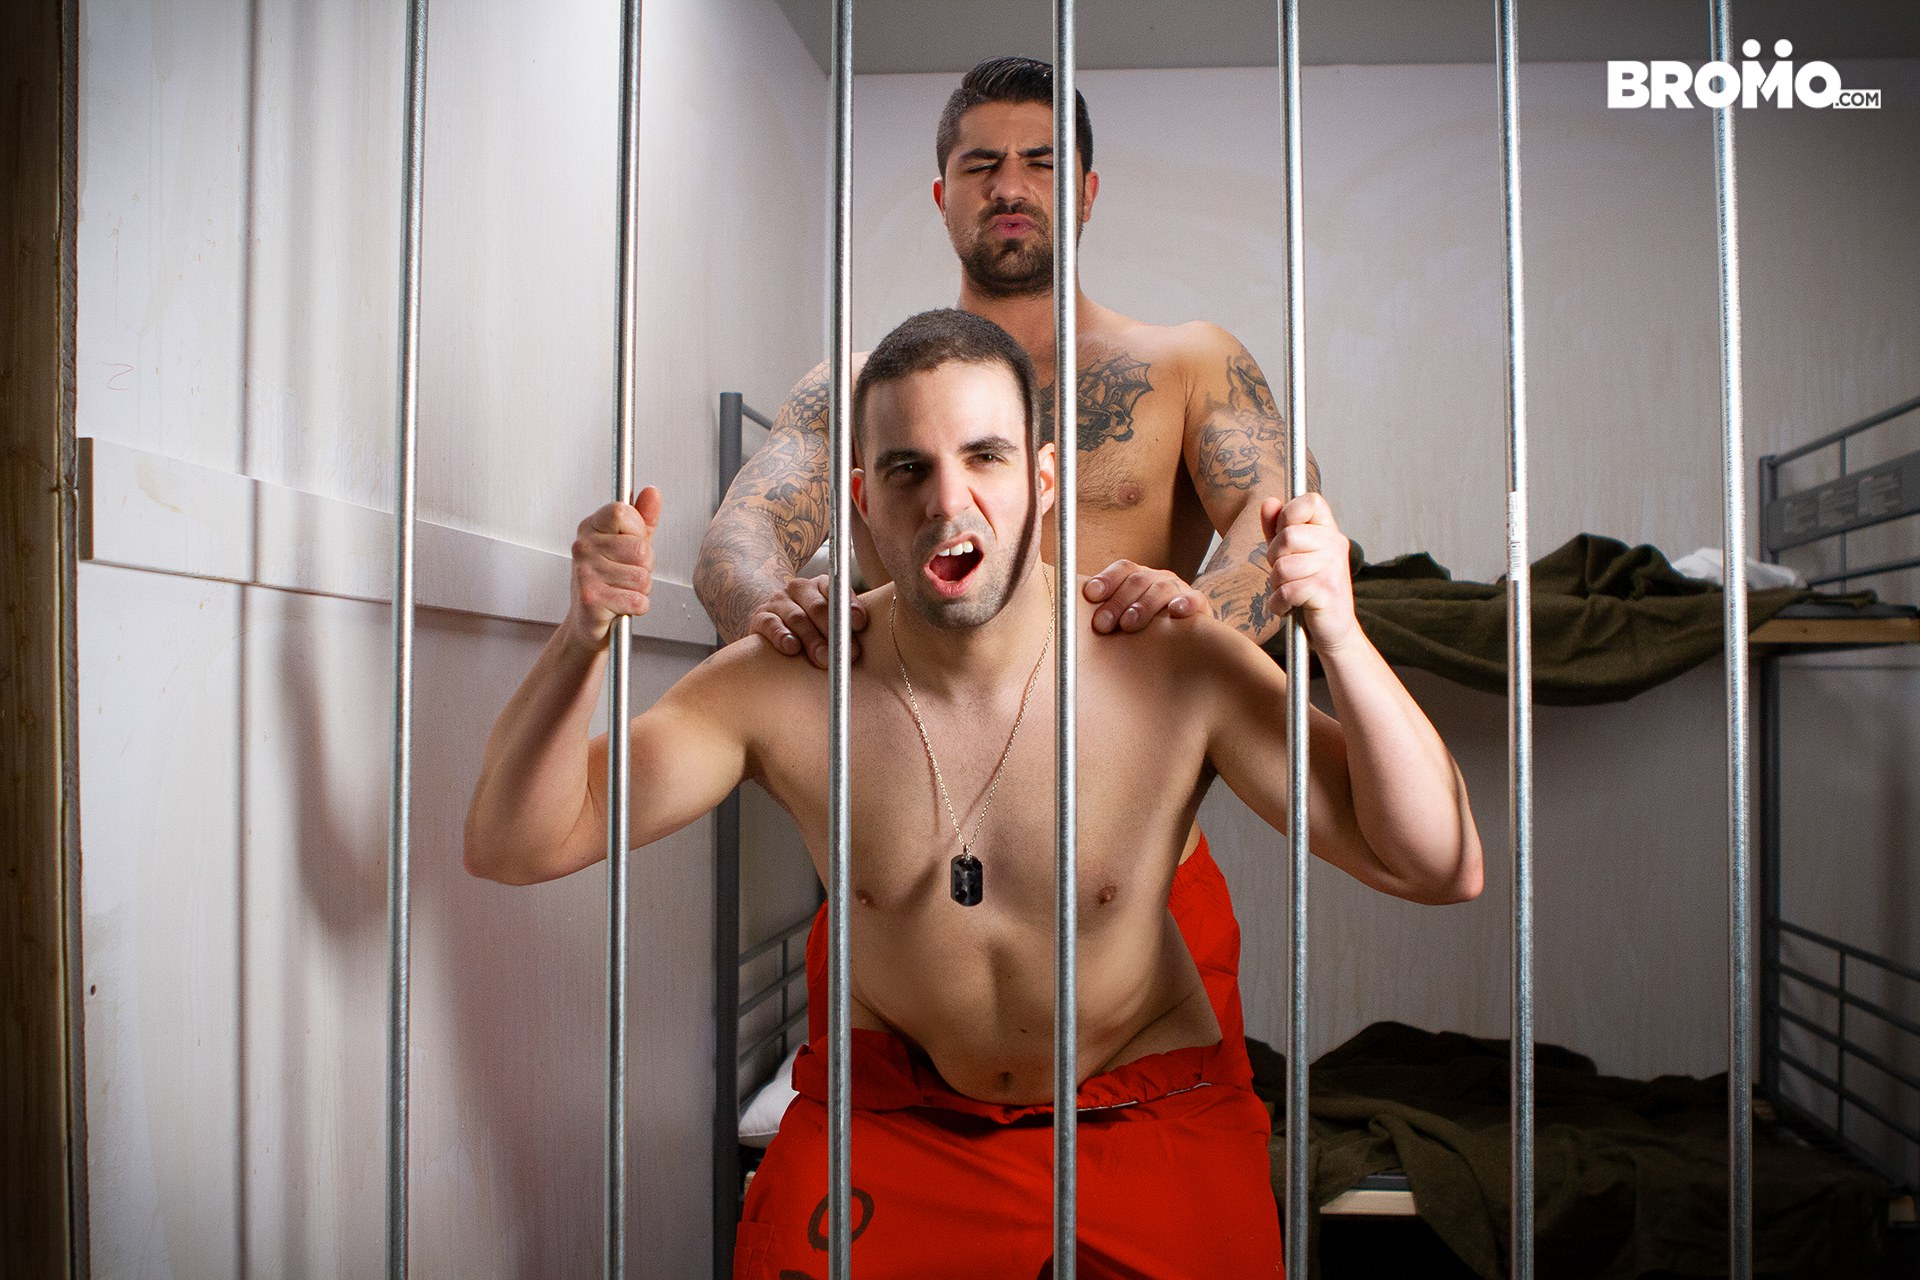 Bareback prison gay porn from the site Bromo